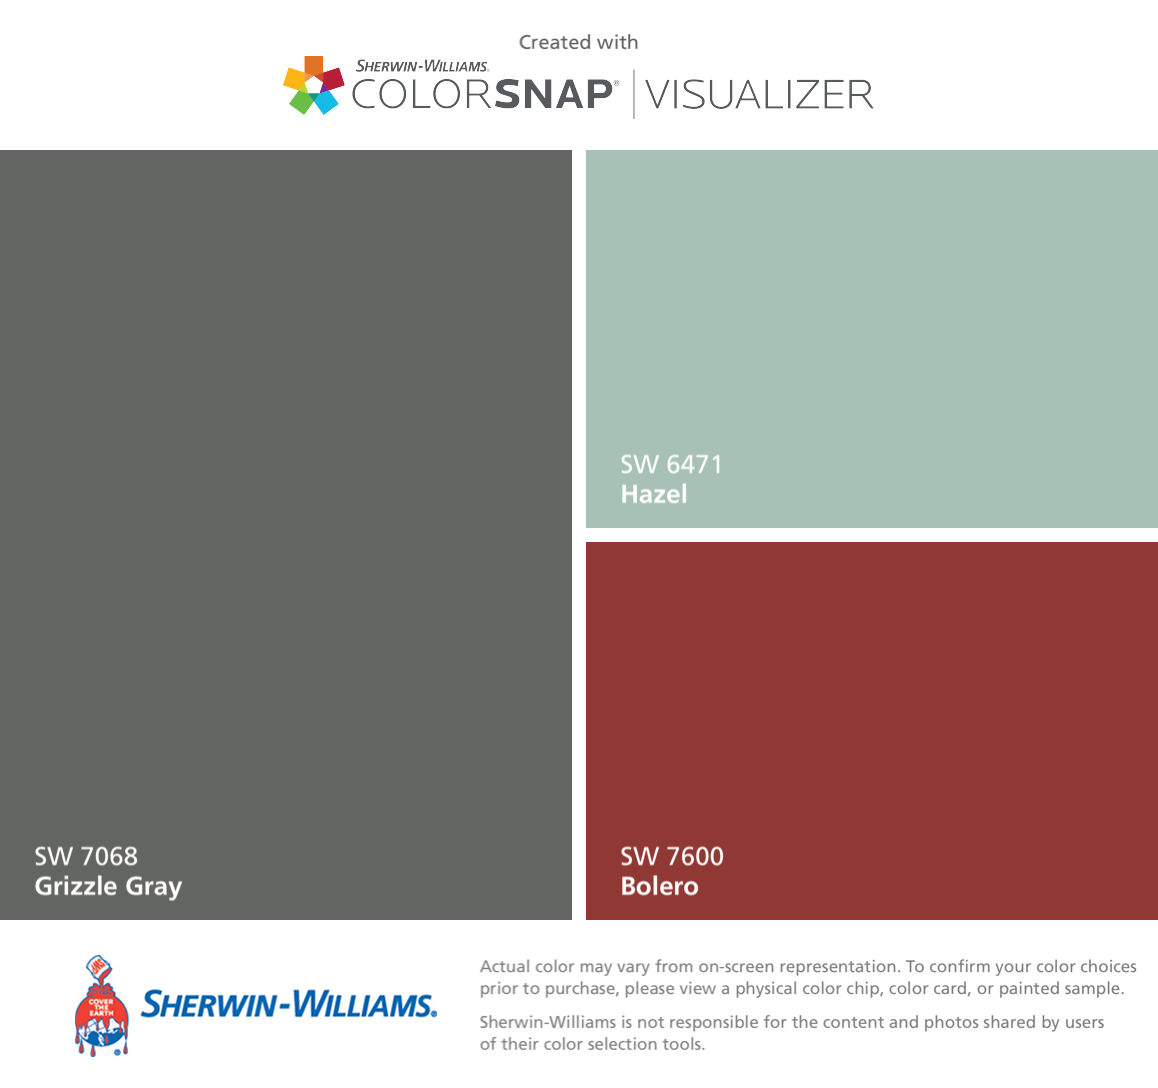 I Found These Colors With Colorsnap Visualizer For Iphone By Sherwin Williams Grizzle Gray Sw